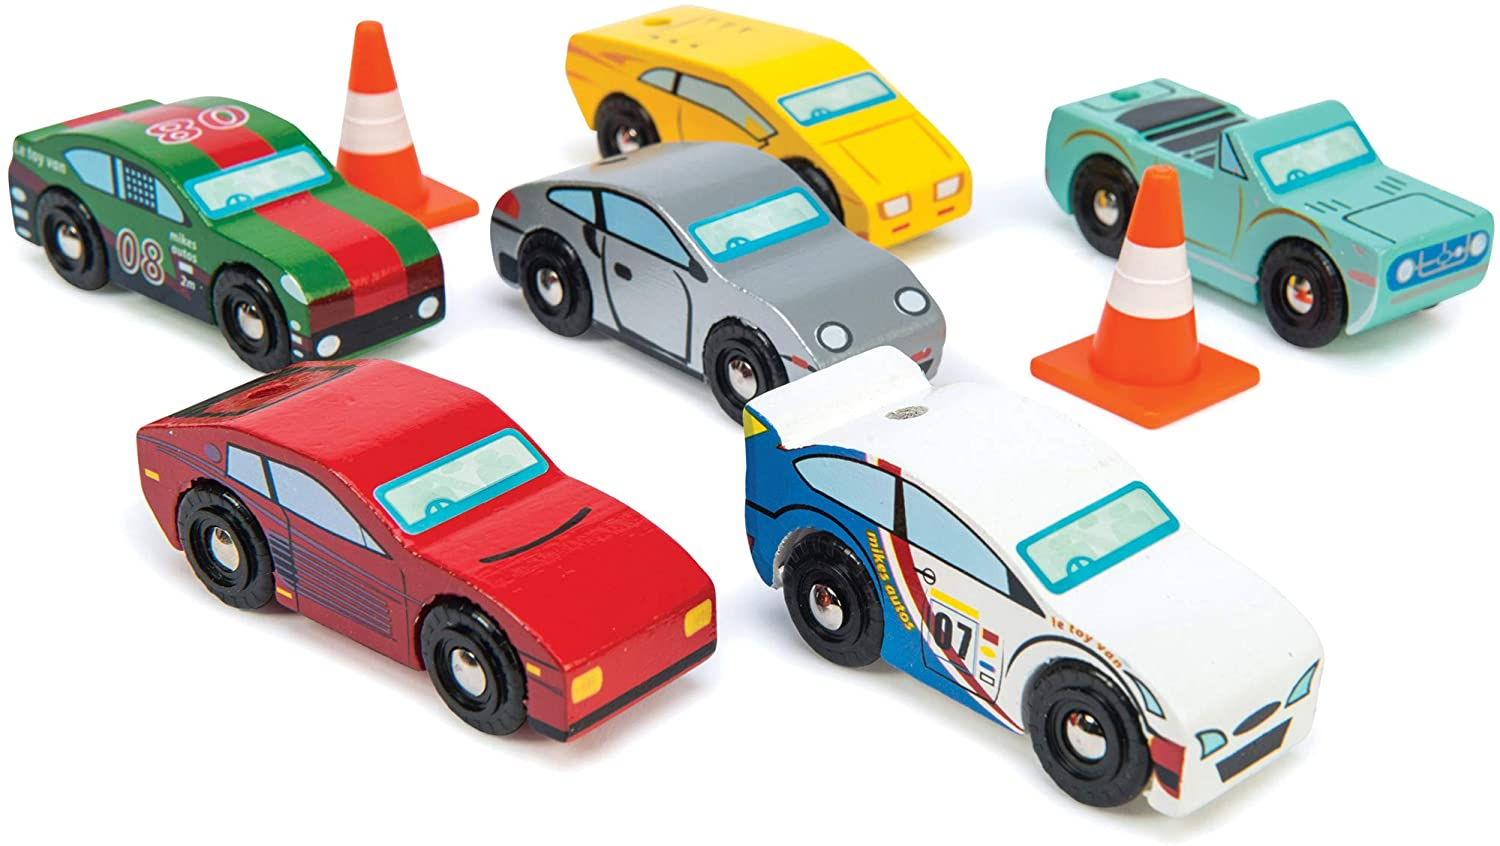 Le Toy Van Motors, Planes & Garages, Montecarlo Sports Cars Premium Wooden Toys for Kids Ages 3 Years & Up